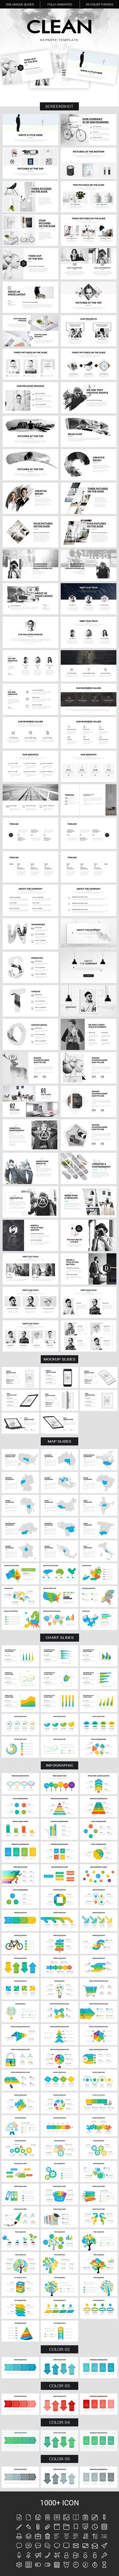 Clean Keynote Template - Creative Keynote Templates More